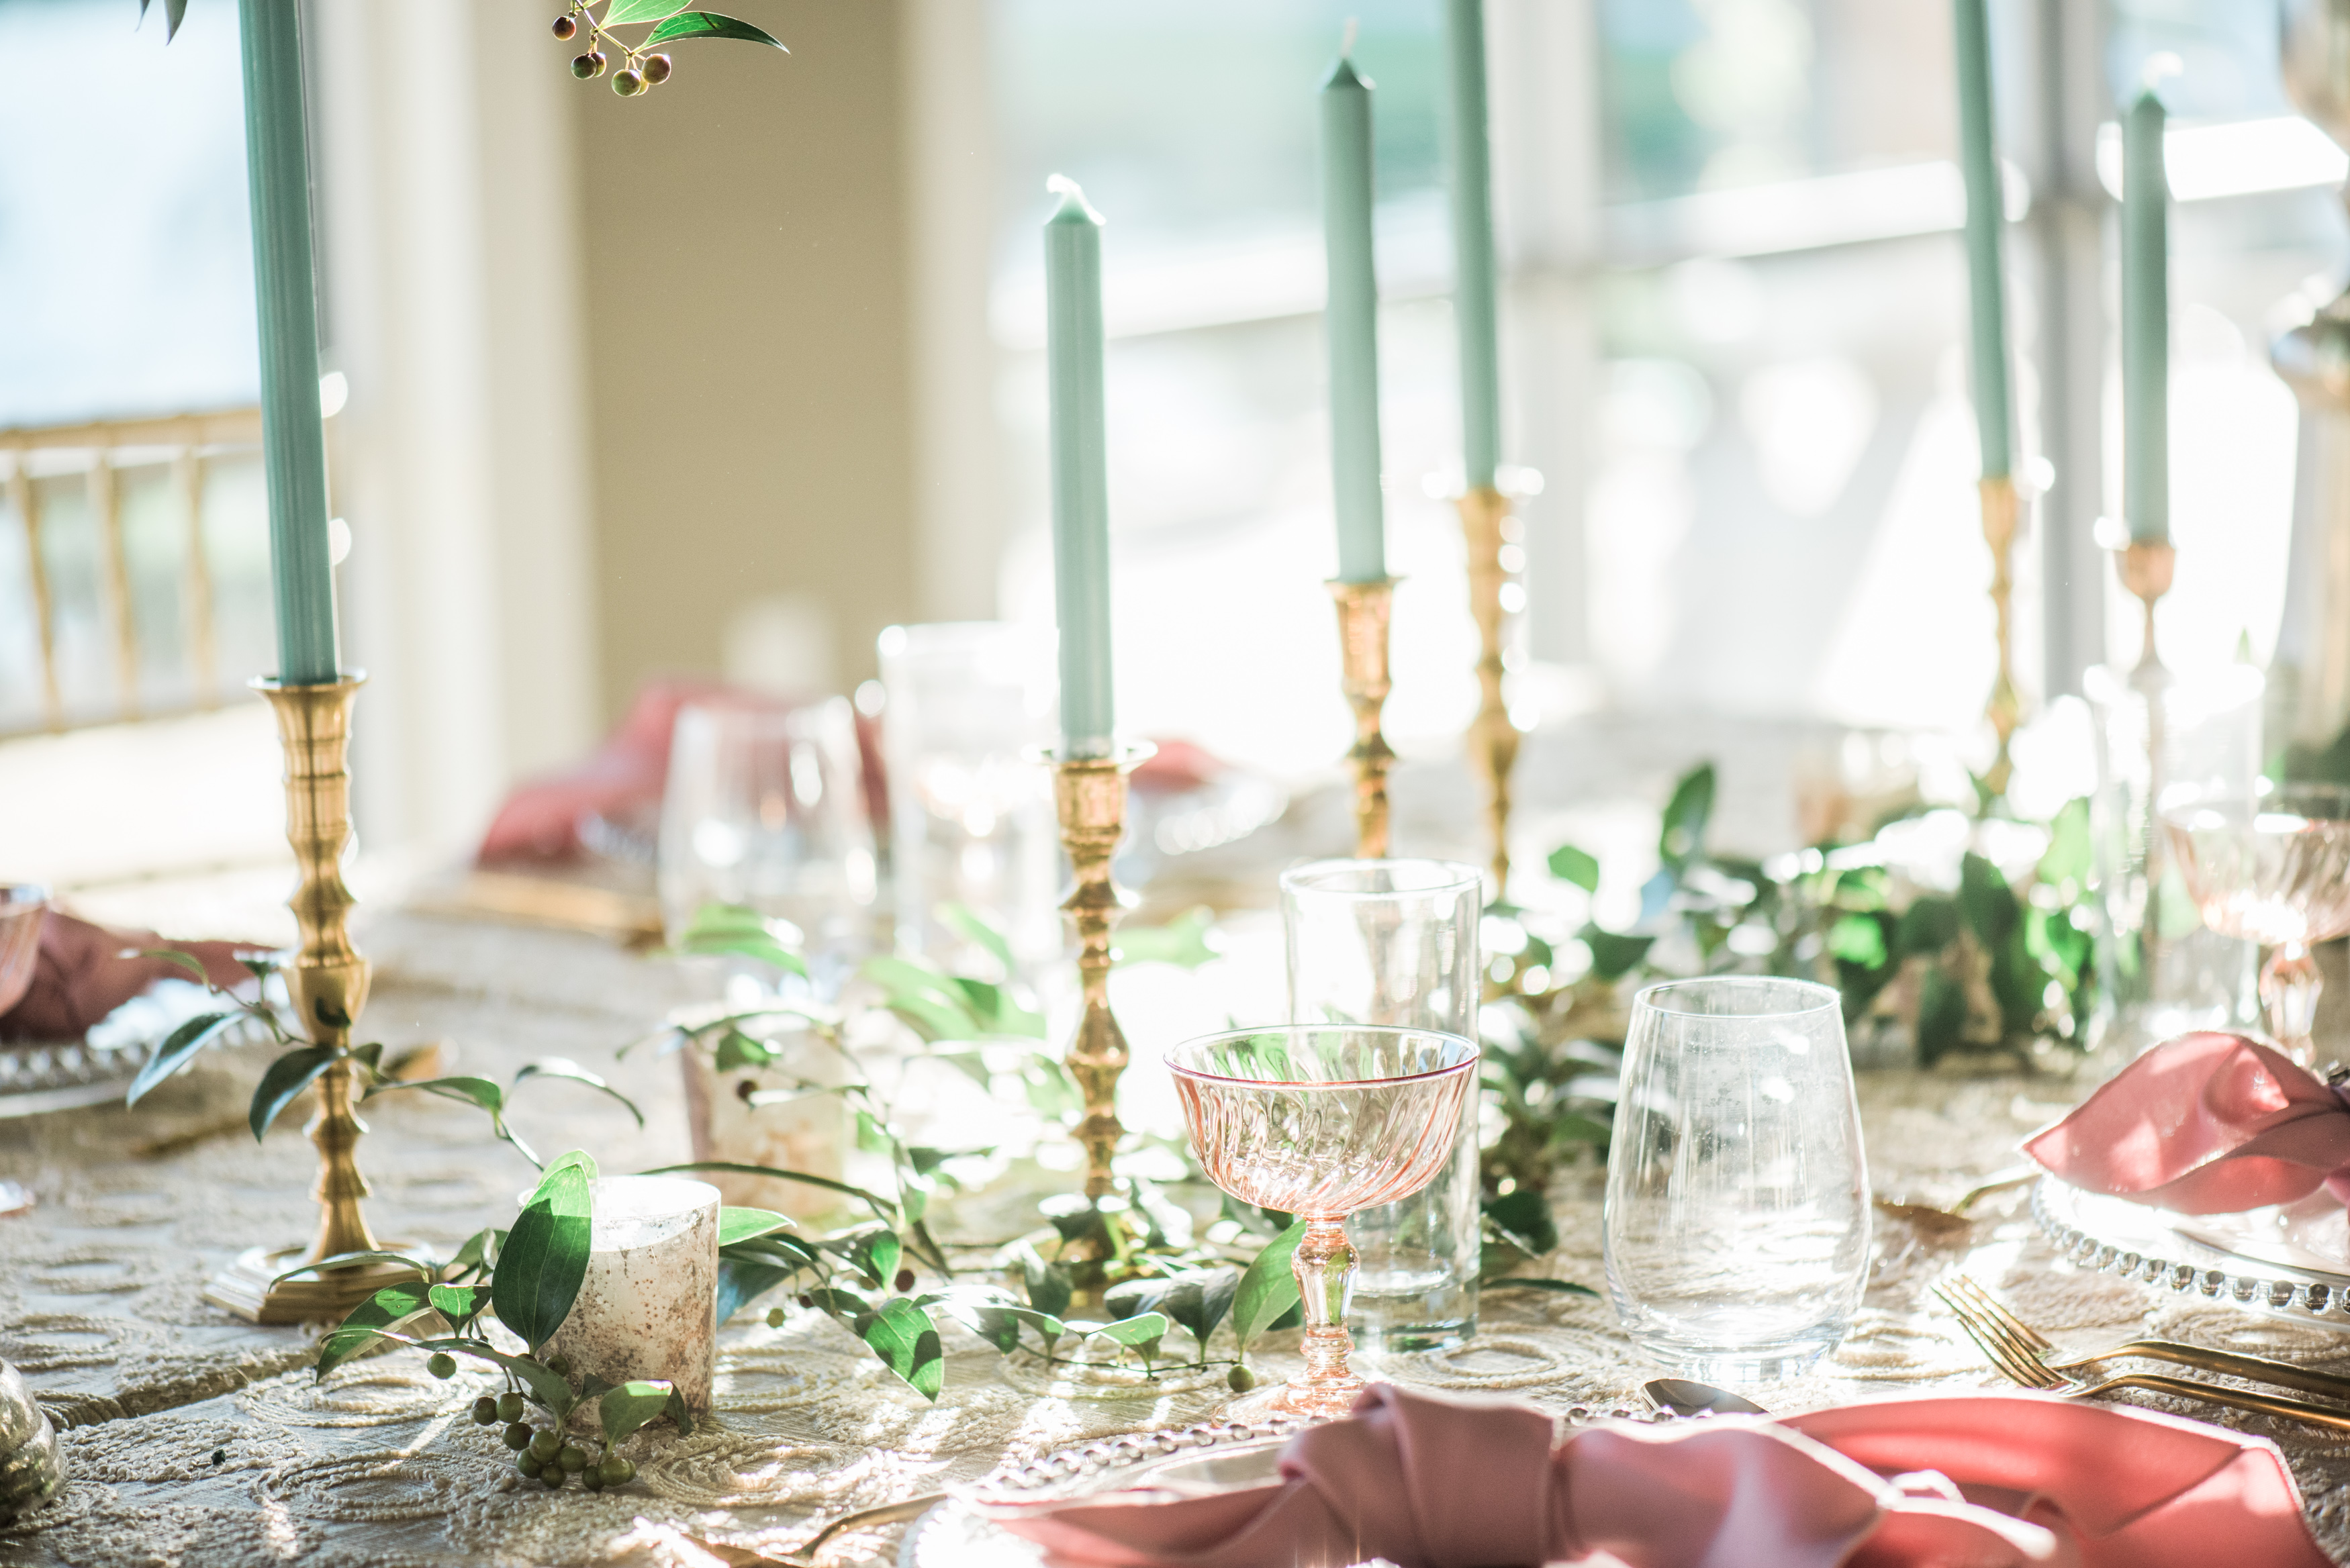 Inn at Quarry Ridge wedding table designed with sea foam green candles in brass candlestick holders and blush linen napkins on clear glass plates with sun streaming through windows in the background by Wedding Photographer in Houston Thomas Ross Photography